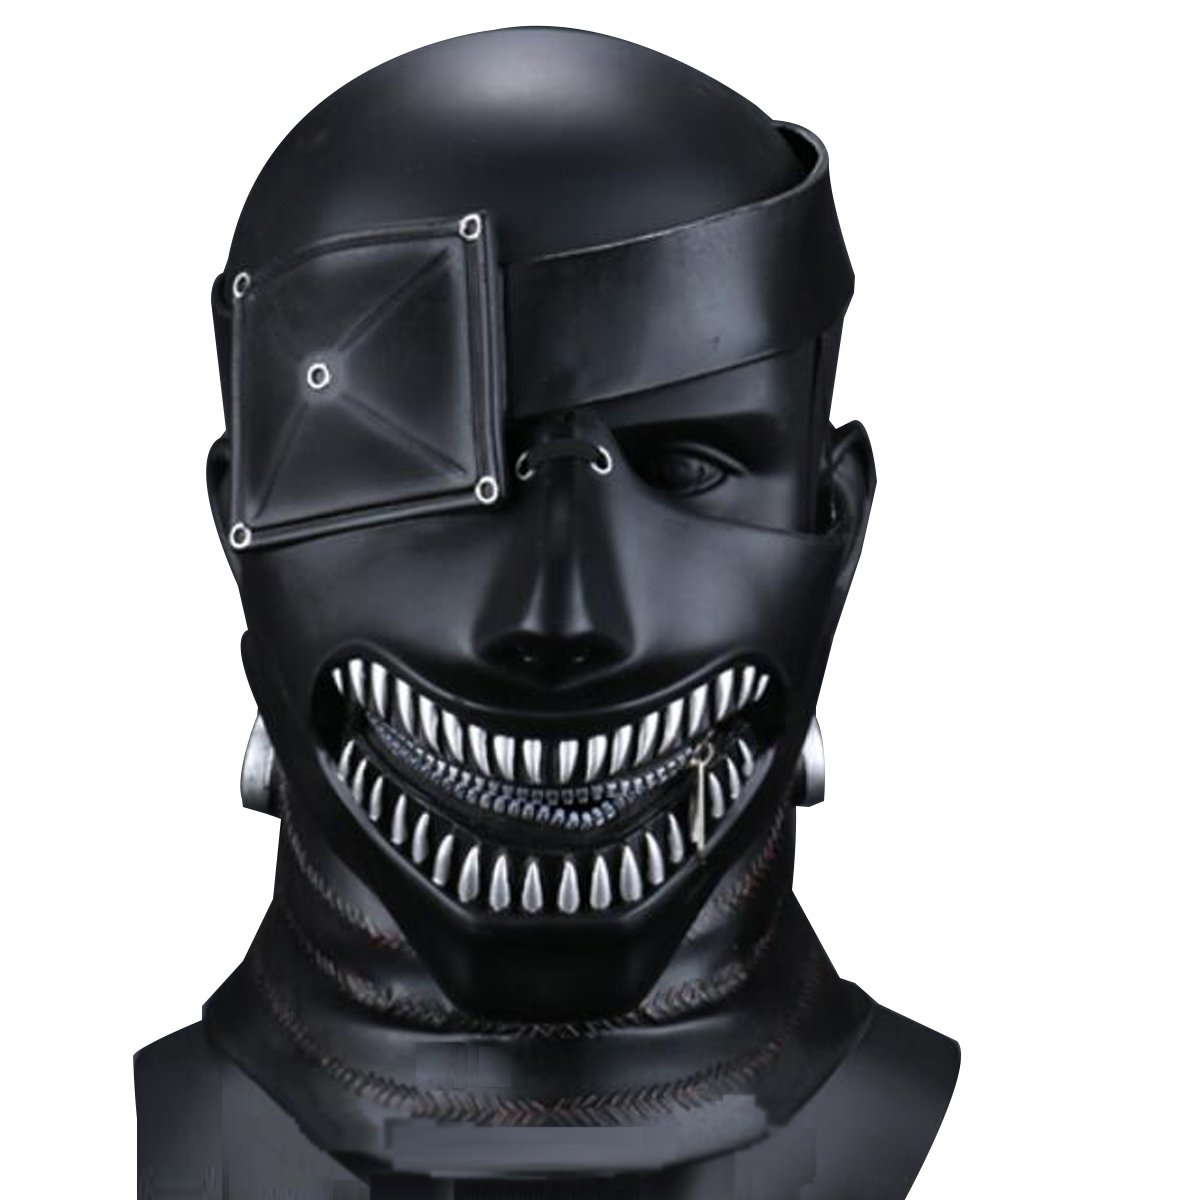 Amazon.com: NSOKing Hot Film Tokyo Ghoul Mask Cosplay Kaneki Ken 3D ...